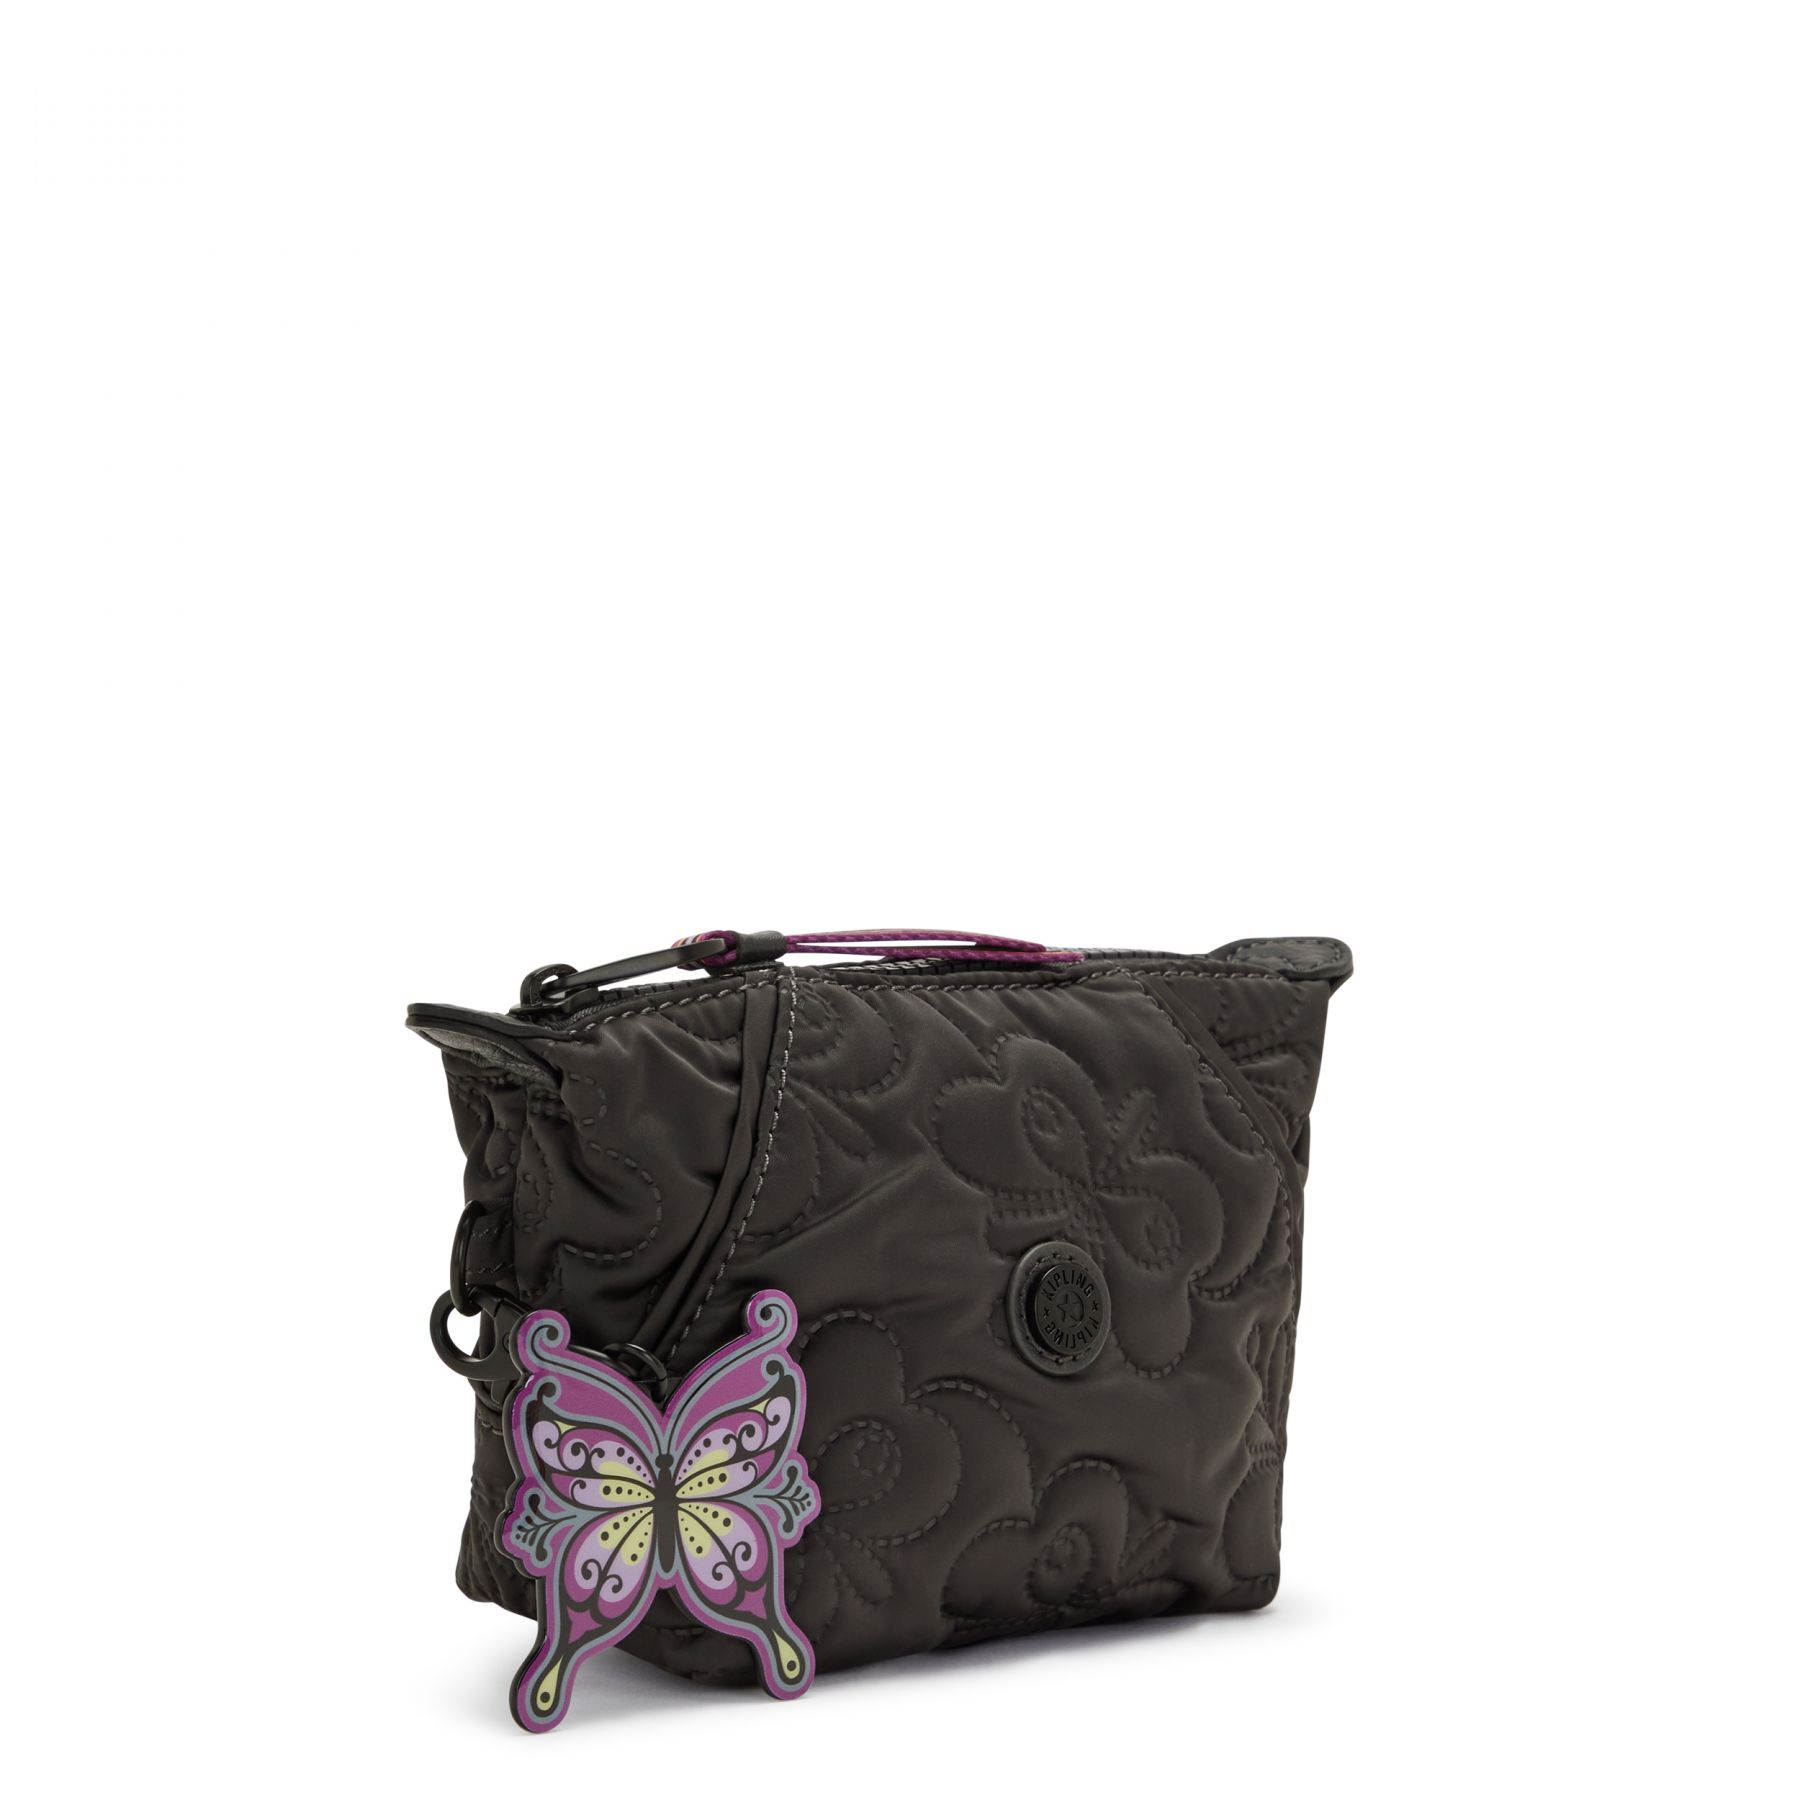 ART POUCH MINI ACCESSORIES by Kipling - view 4